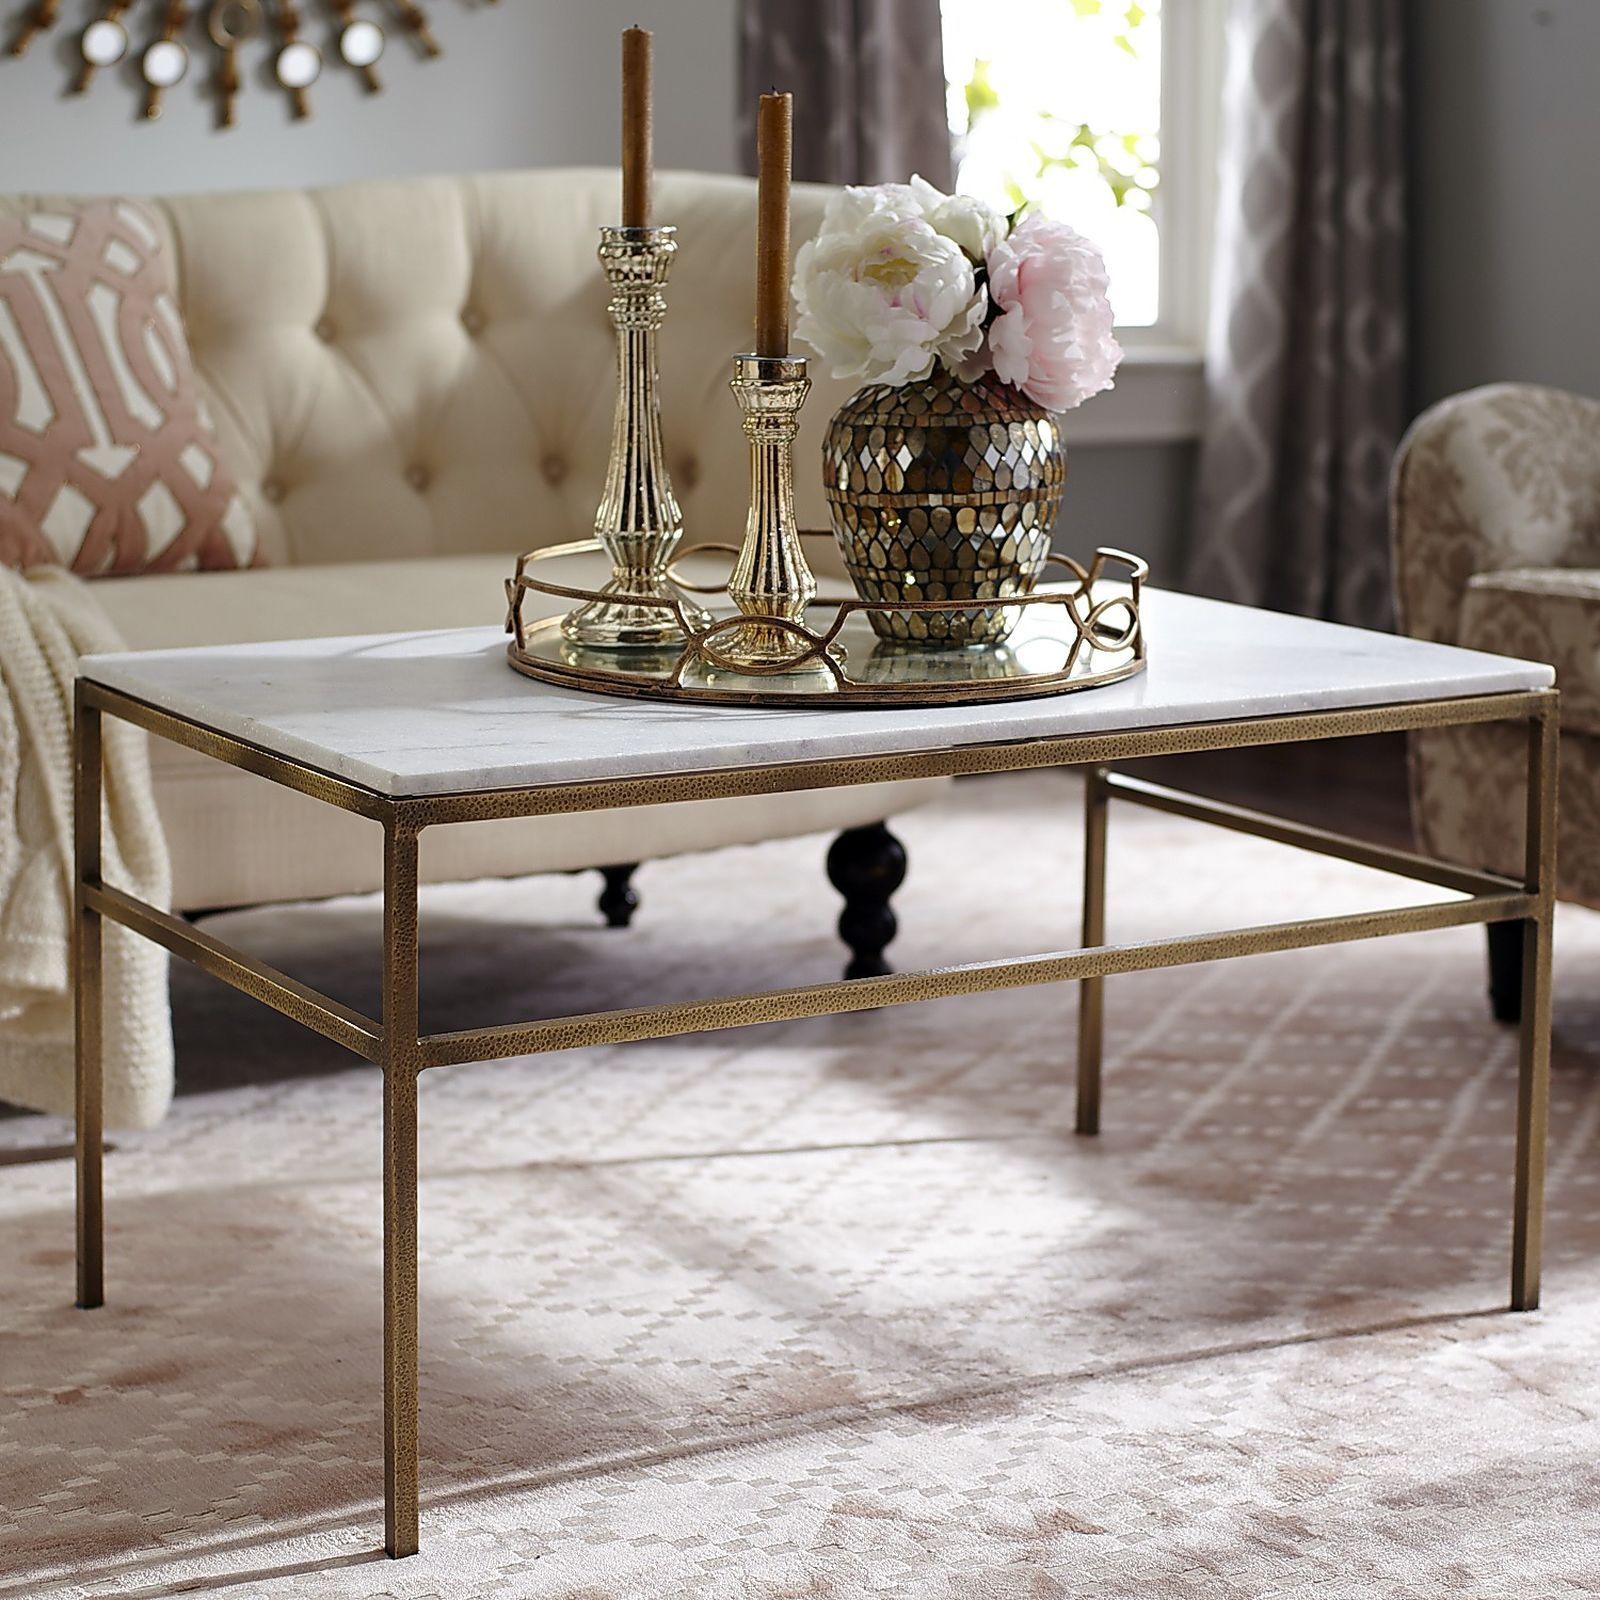 25+ White and gold coffee table target inspirations